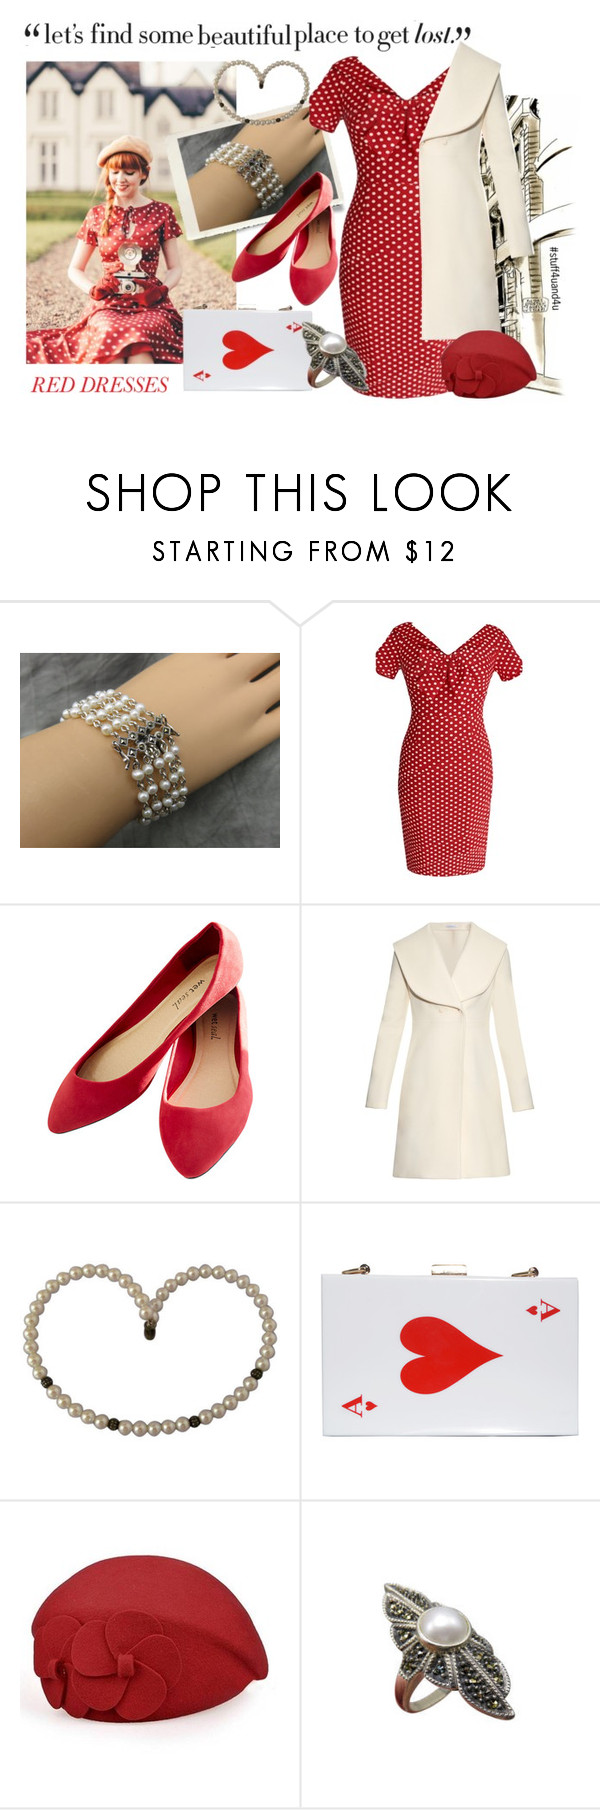 """""""Pearls and Polka Dots"""" by stuff4uand4u ❤ liked on Polyvore featuring Judith Jack, Wet Seal, J.W. Anderson, Rare London, reddress and stuff4uand4u"""